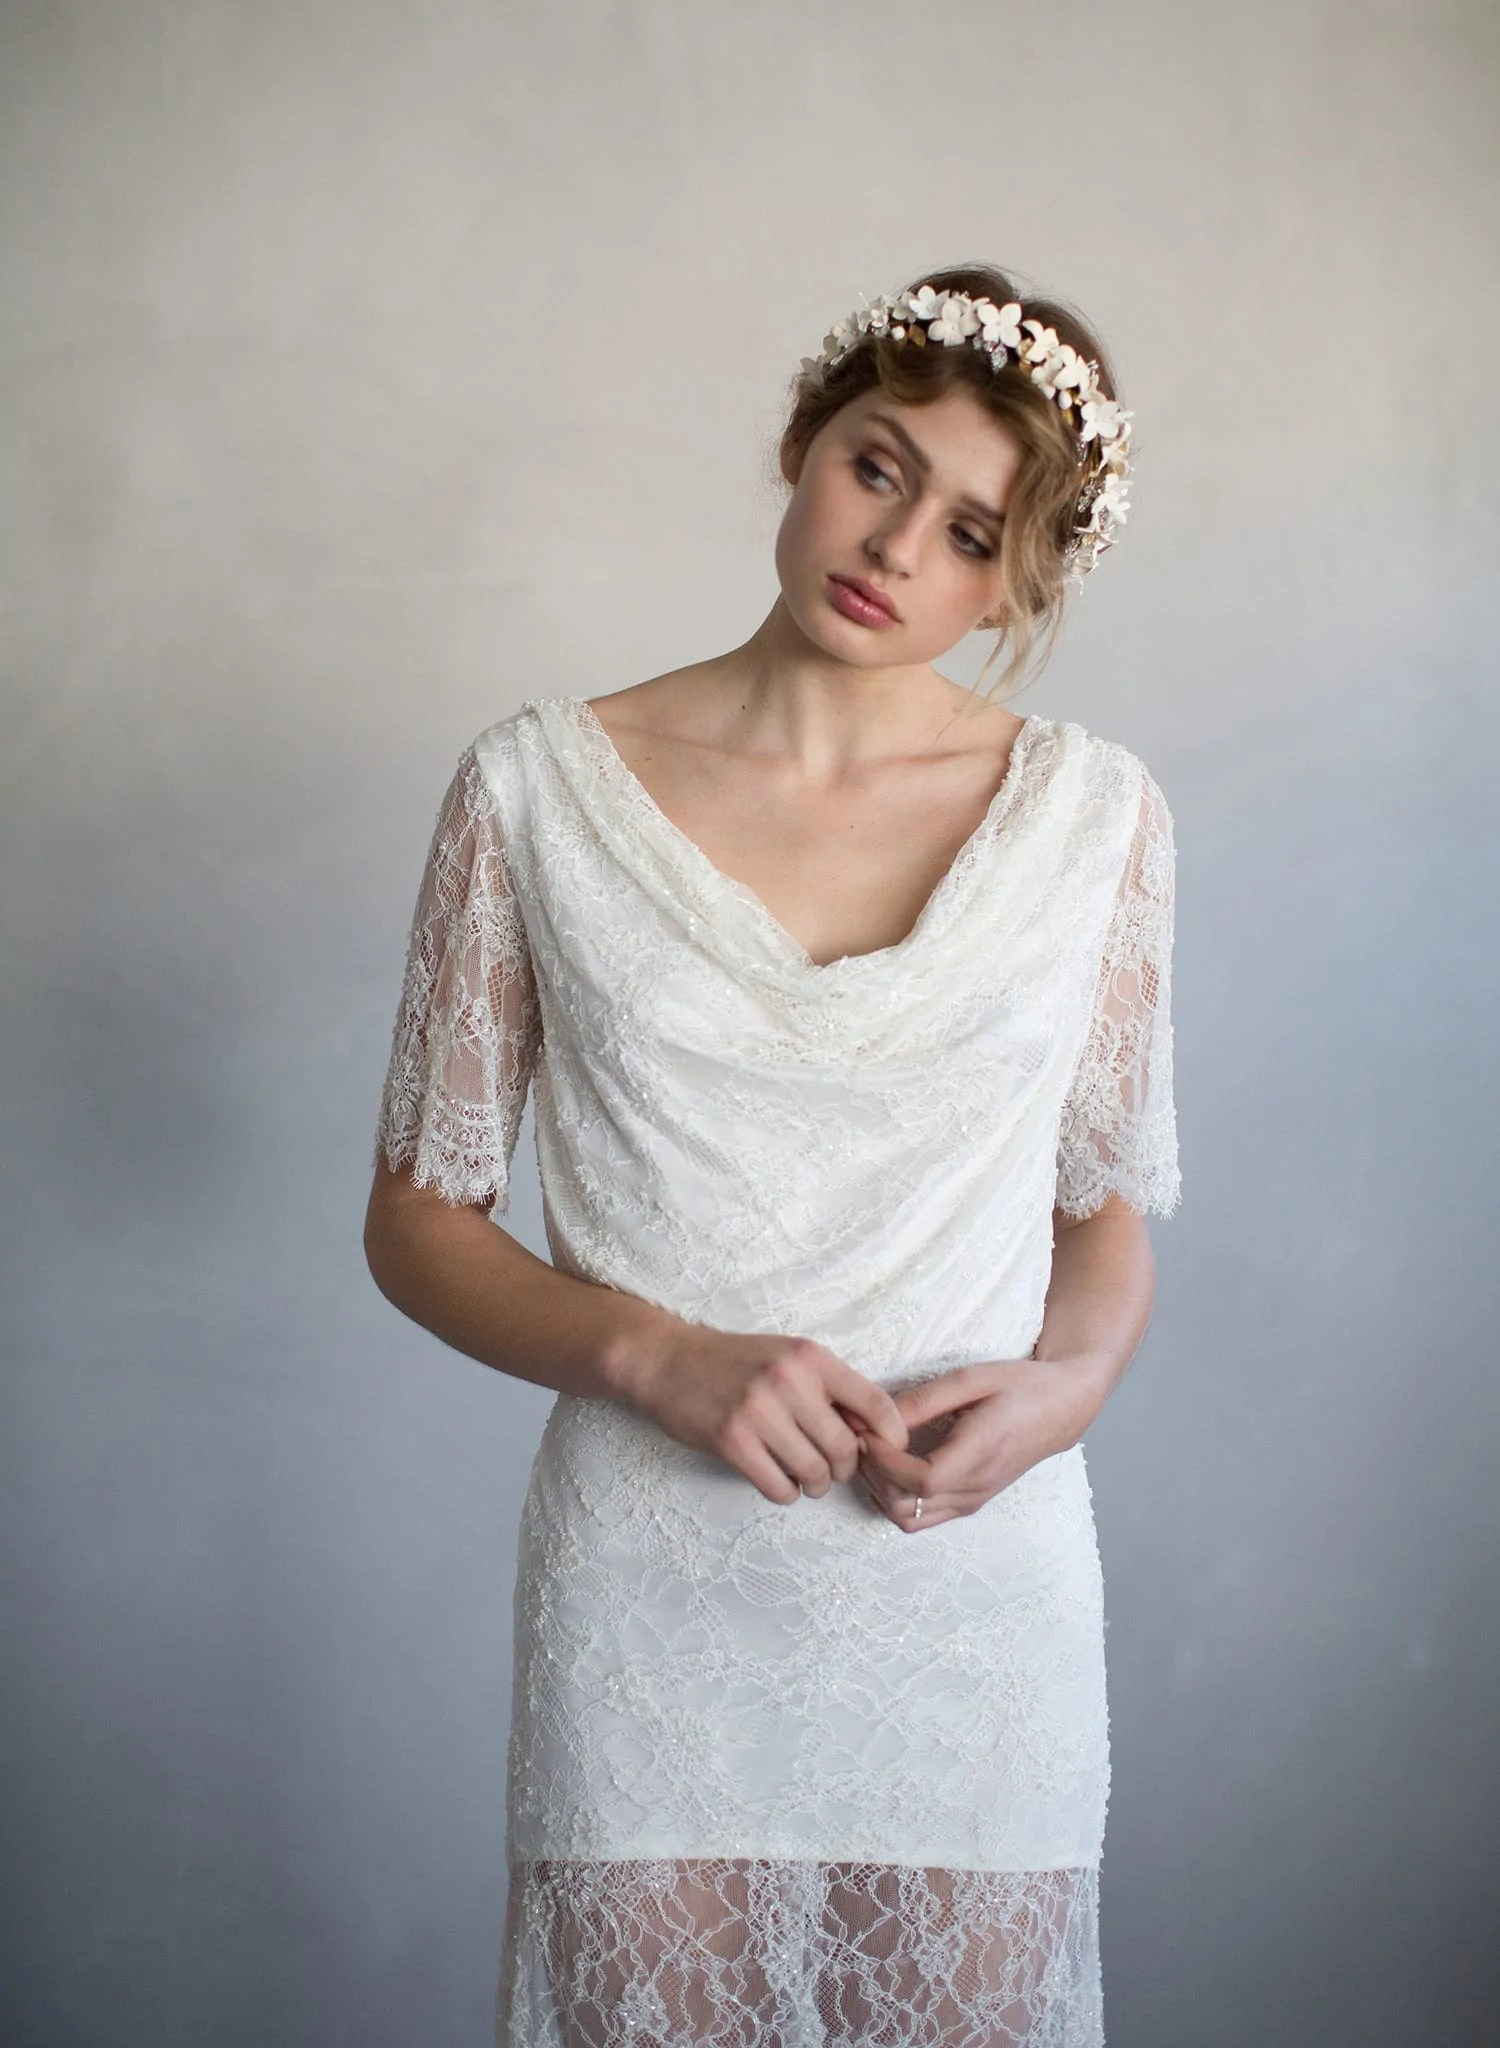 sugar cowl neck beaded lace gown th cowl neck wedding dress Beaded cowl neck vintage inspired bridal gown wedding dress ivory lace sleeves